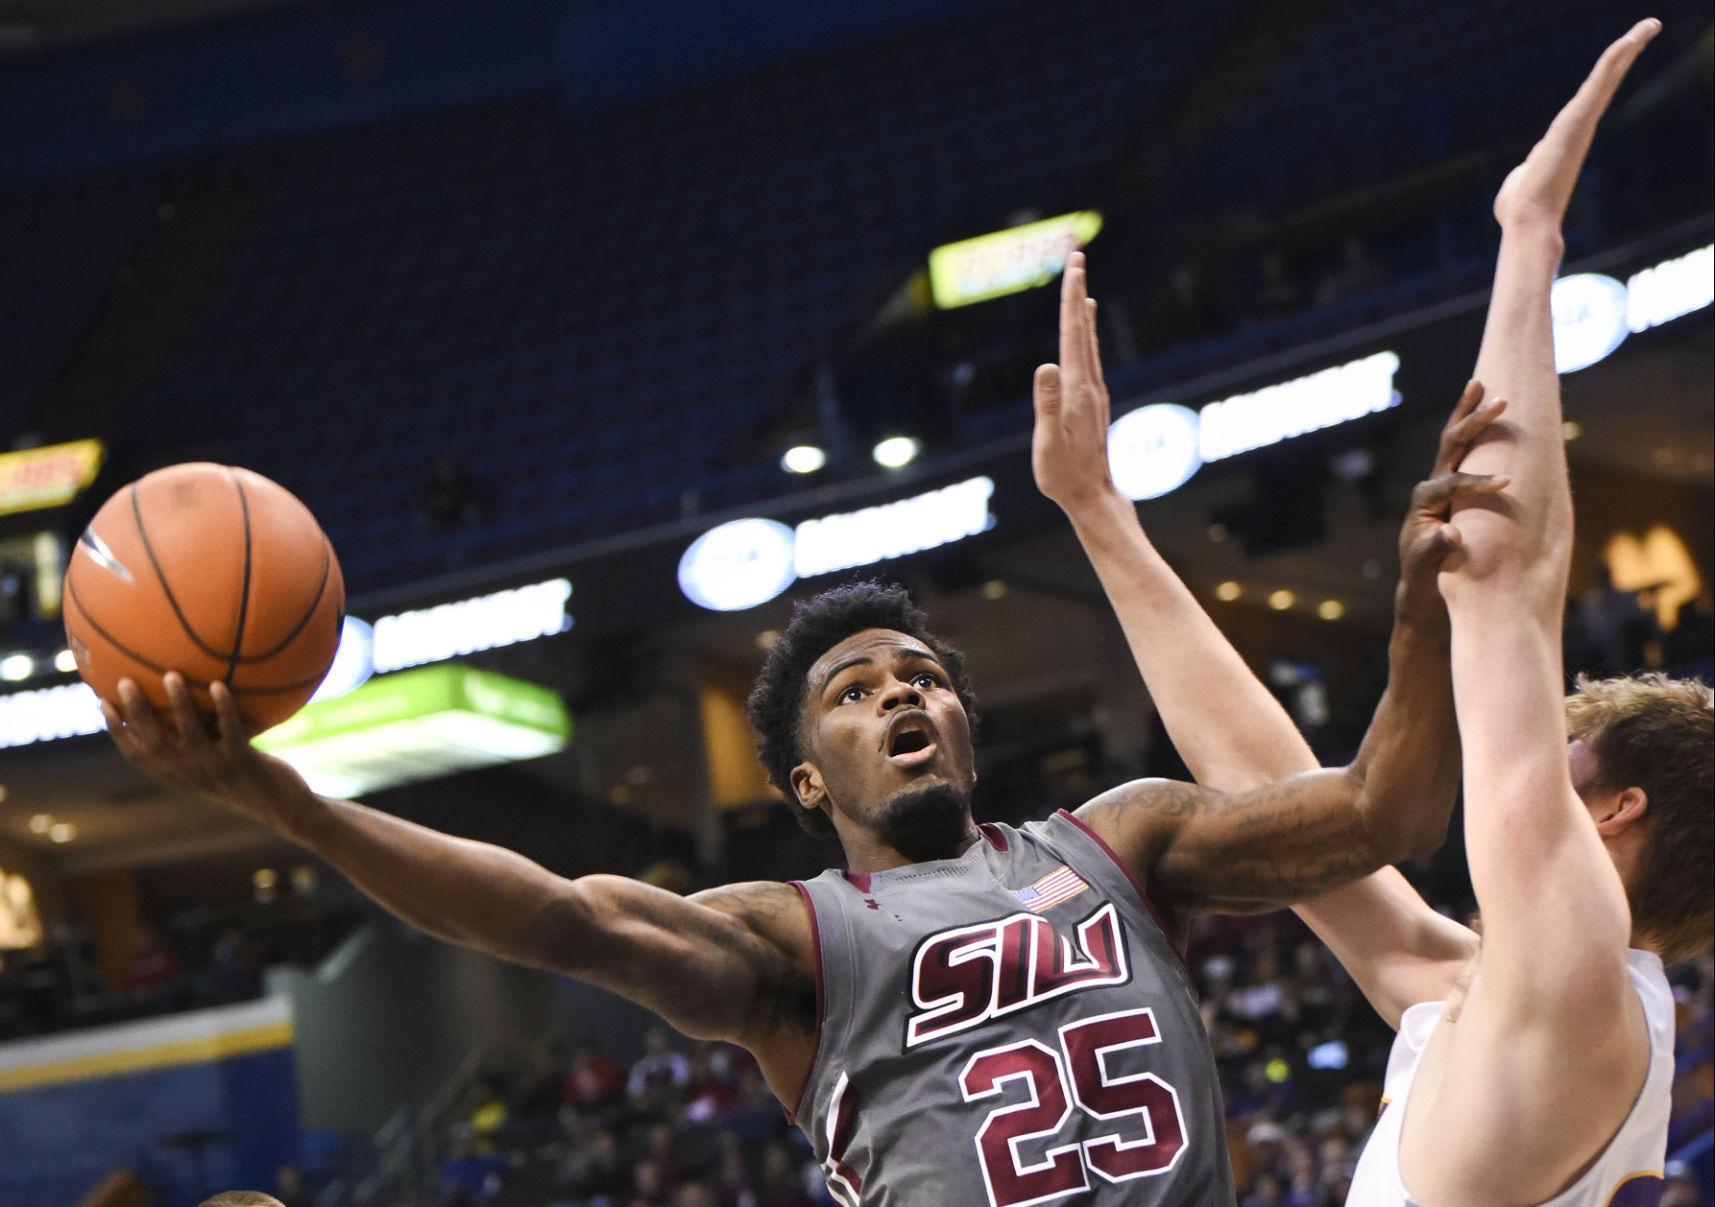 Anthony Beane attempts a shot during the Salukis' 66-60 loss to Northern Iowa on Friday during the Missouri Valley Conference Tournament in St. Louis. (DailyEgyptian.com file photo)